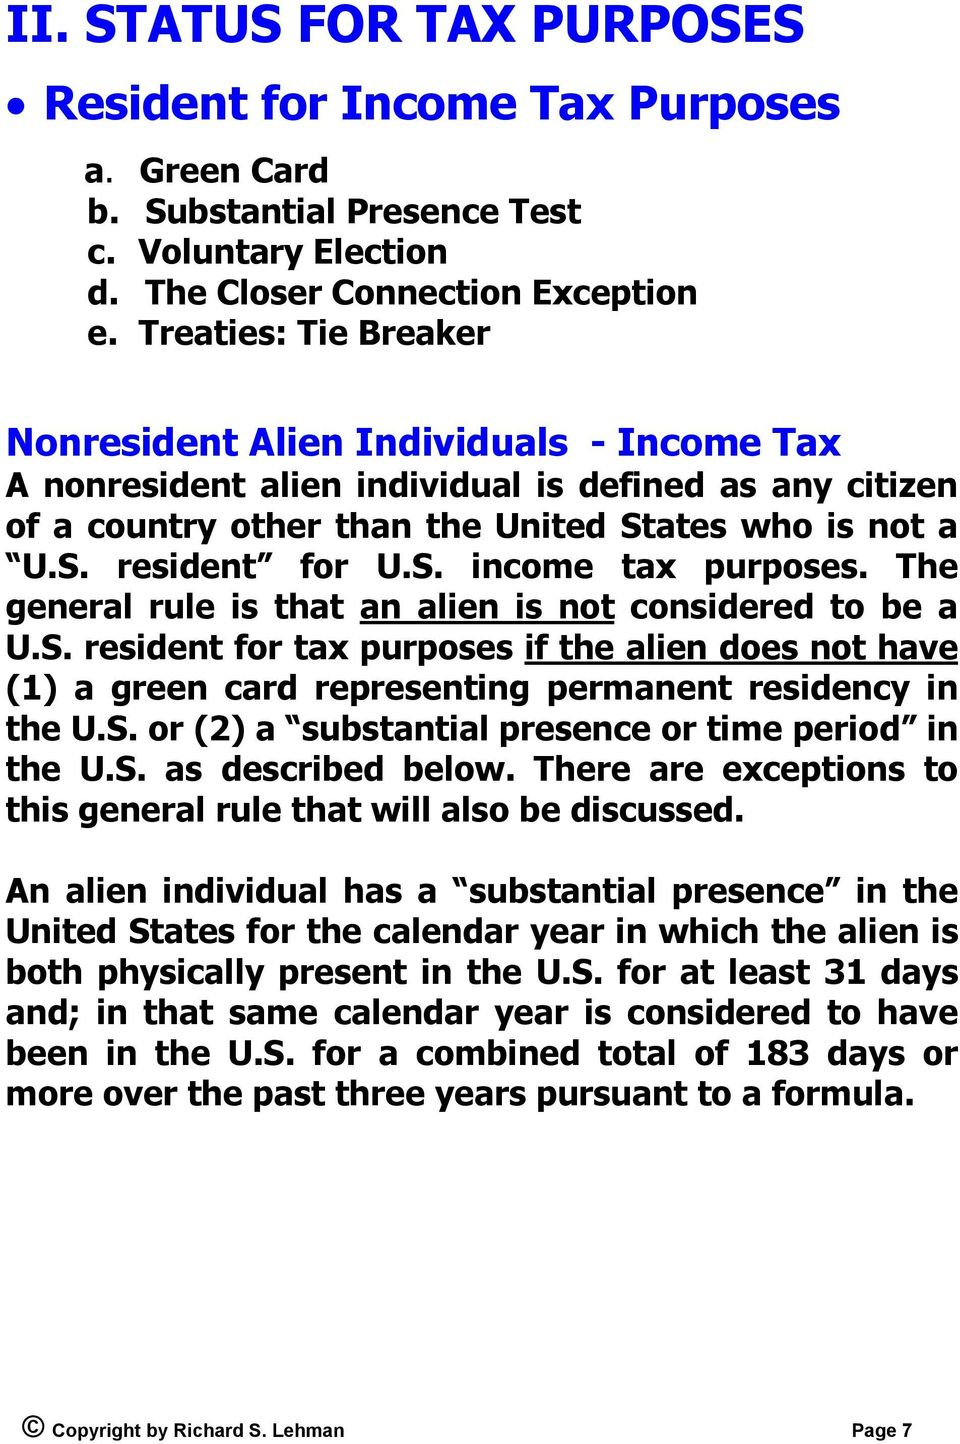 The general rule is that an alien is not considered to be a U.S. resident for tax purposes if the alien does not have (1) a green card representing permanent residency in the U.S. or (2) a substantial presence or time period in the U.